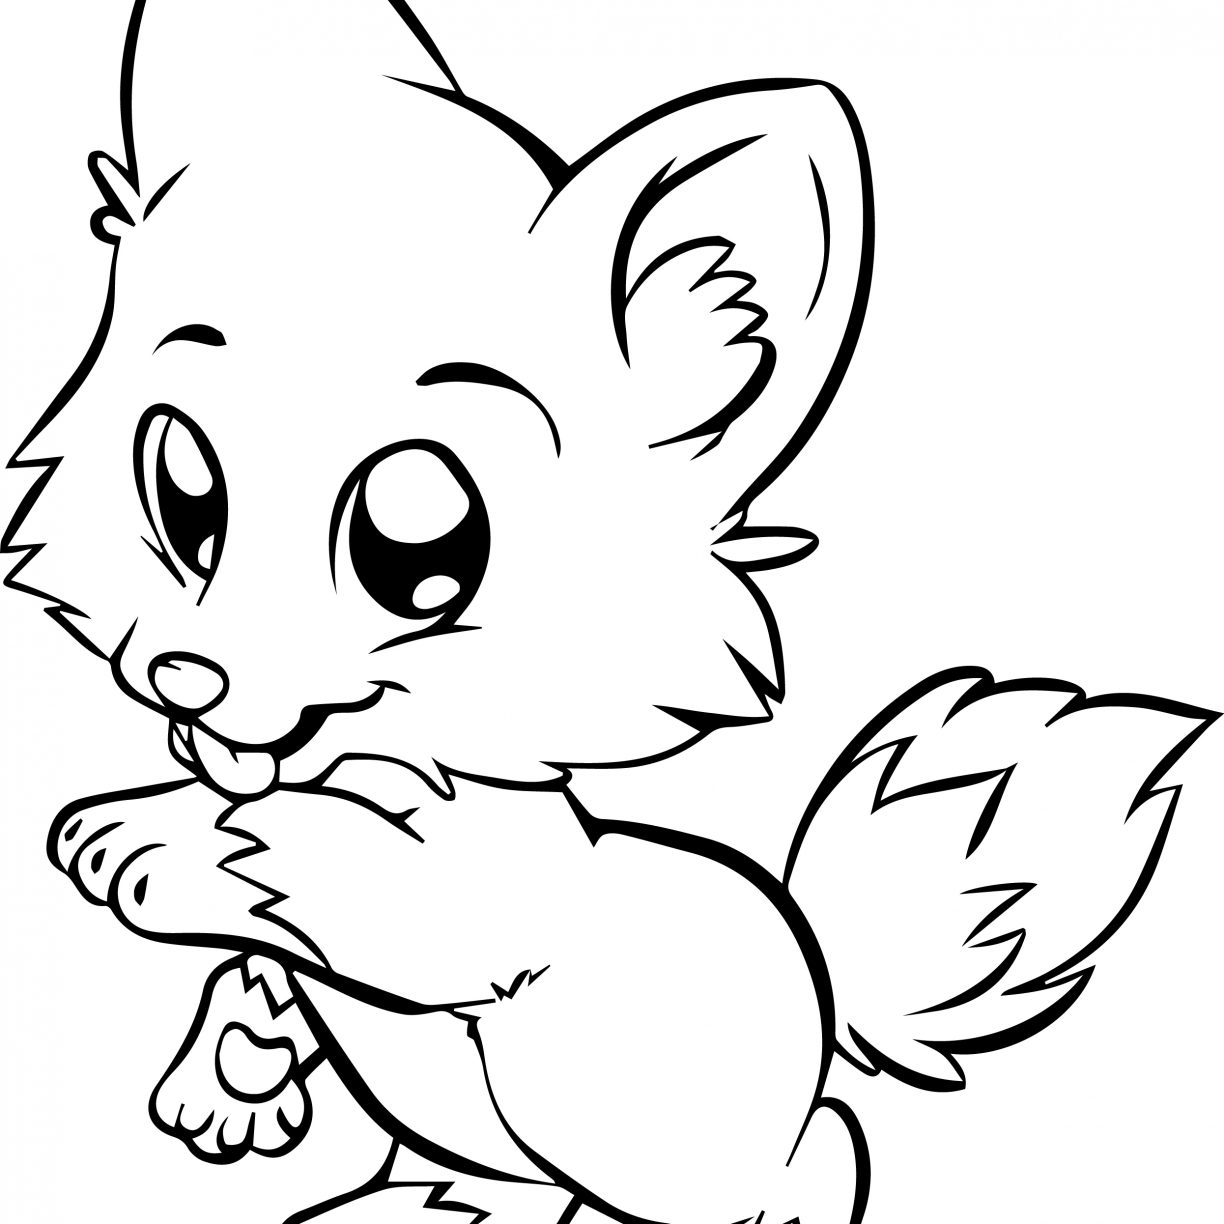 a coloring page of a dog coloring pages of dogs dog a page coloring a of